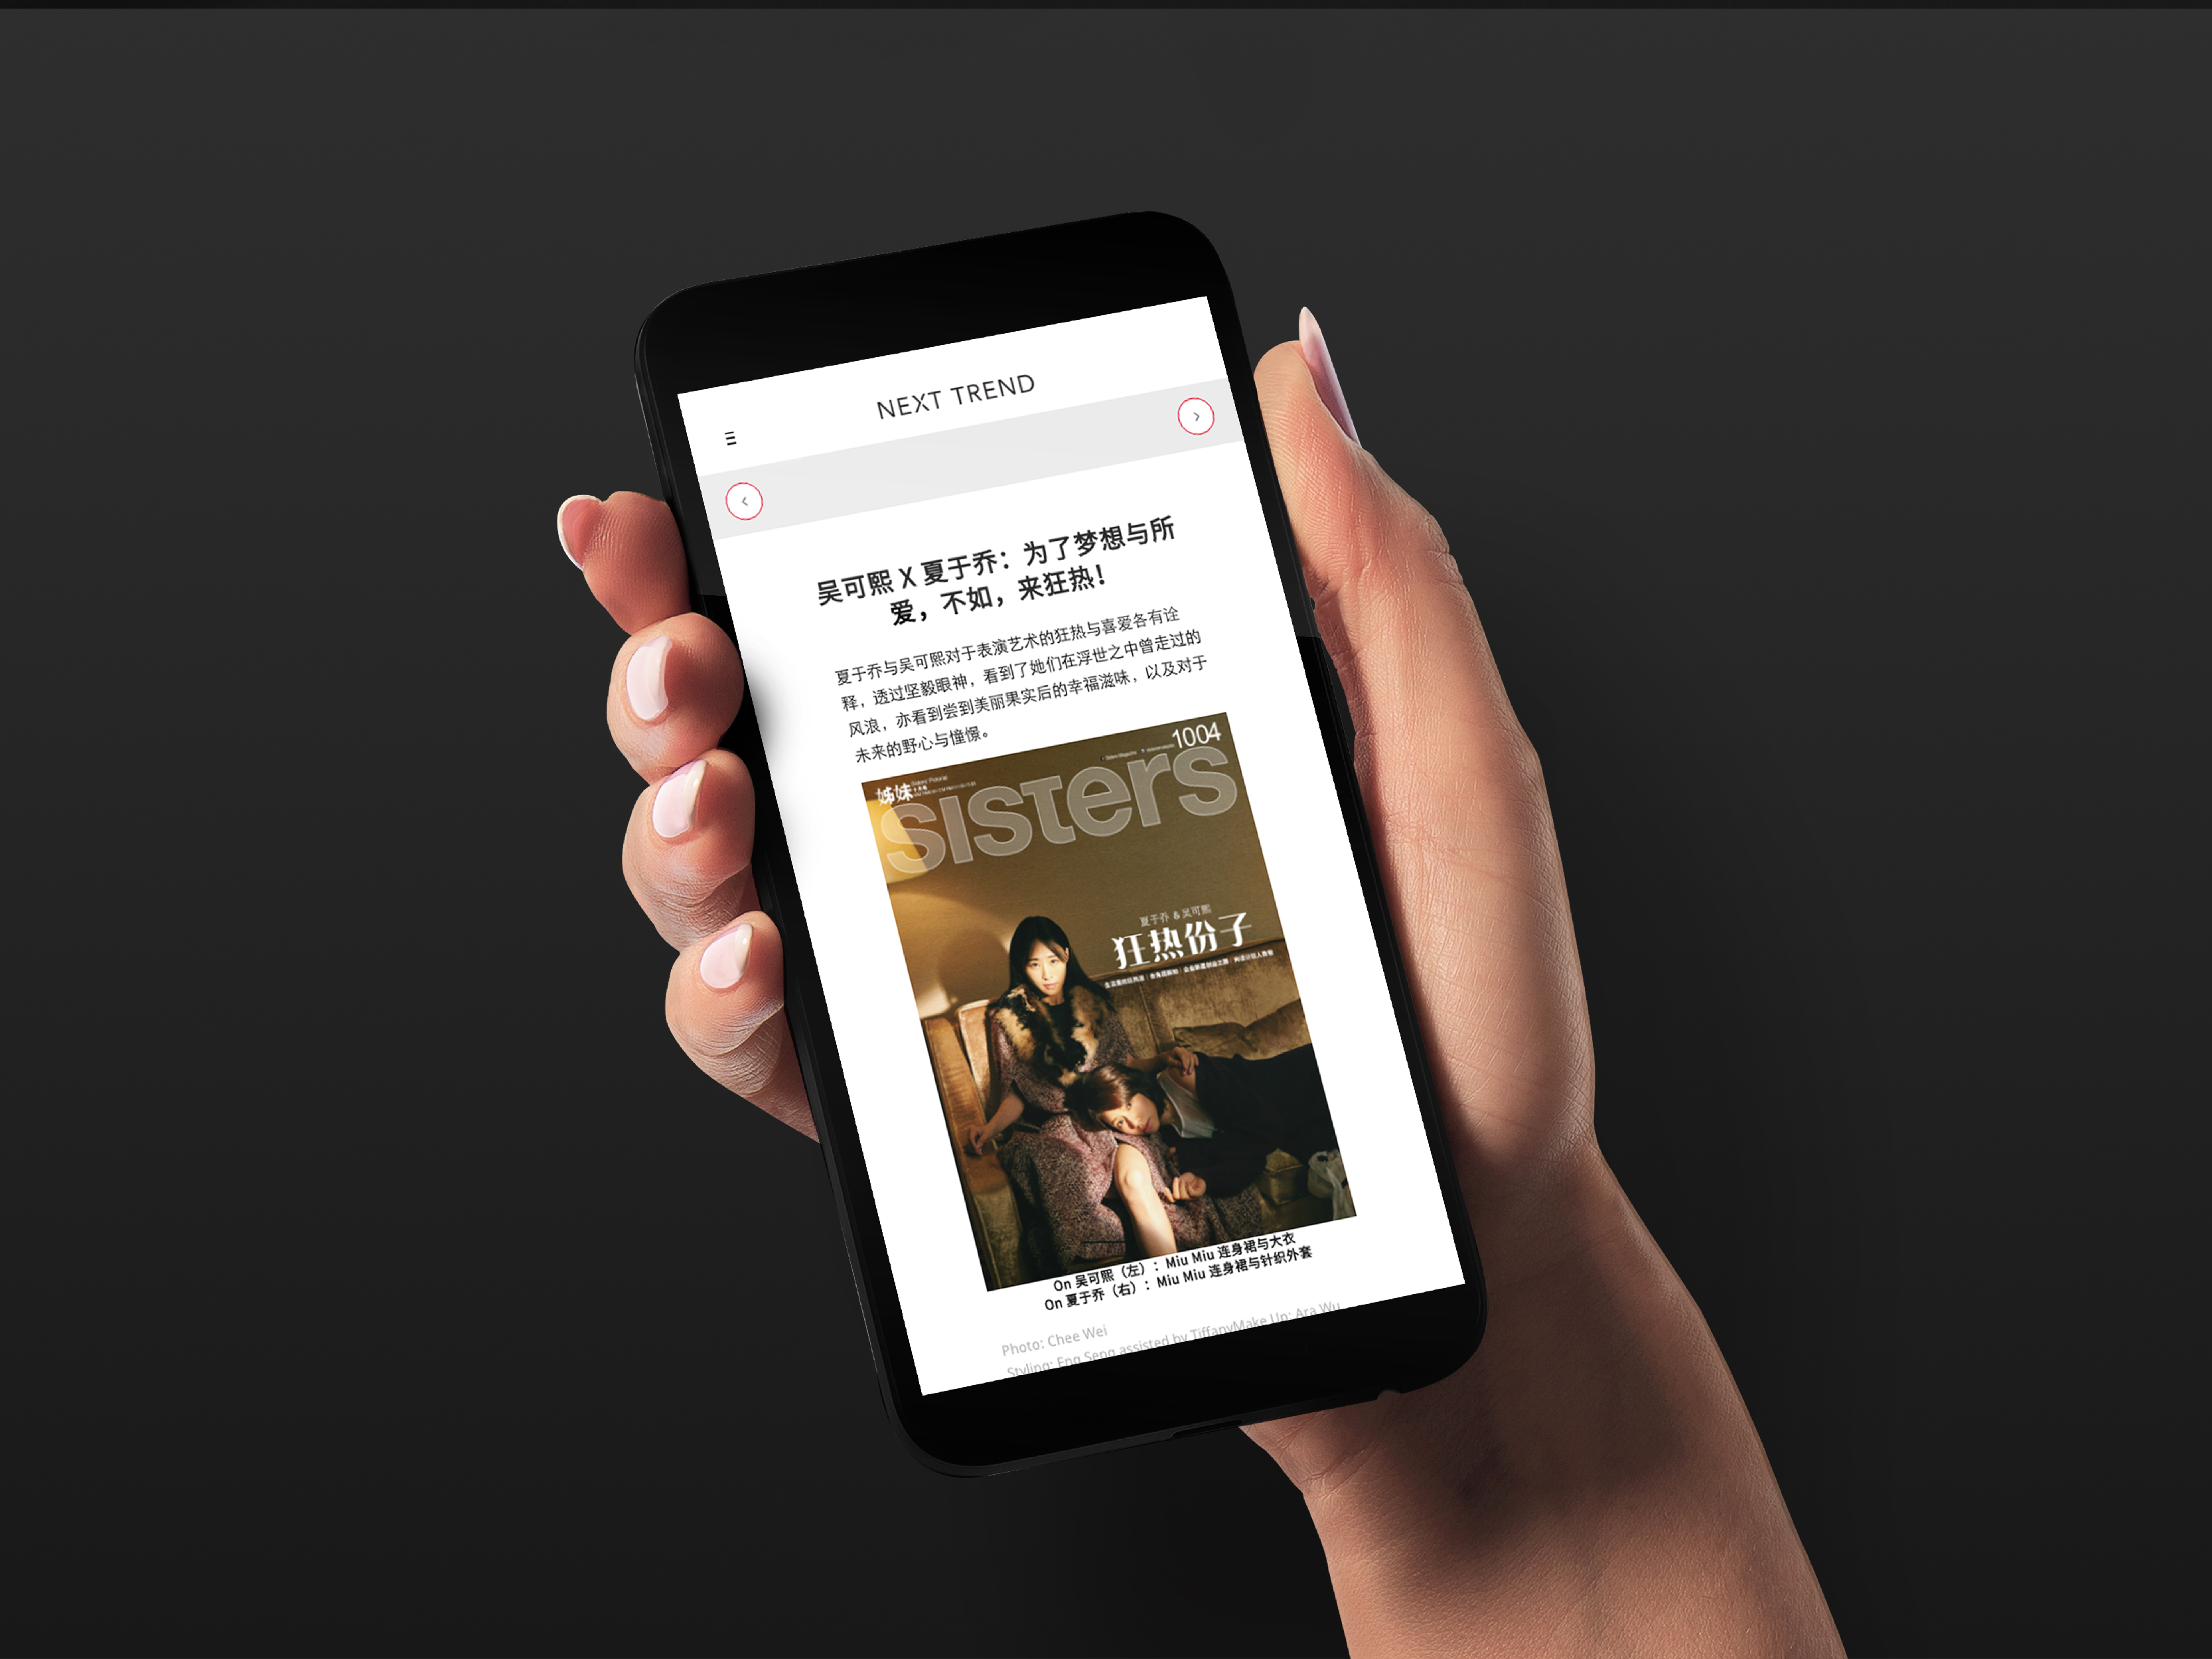 Next Trend Publication website mobile view held by a hand